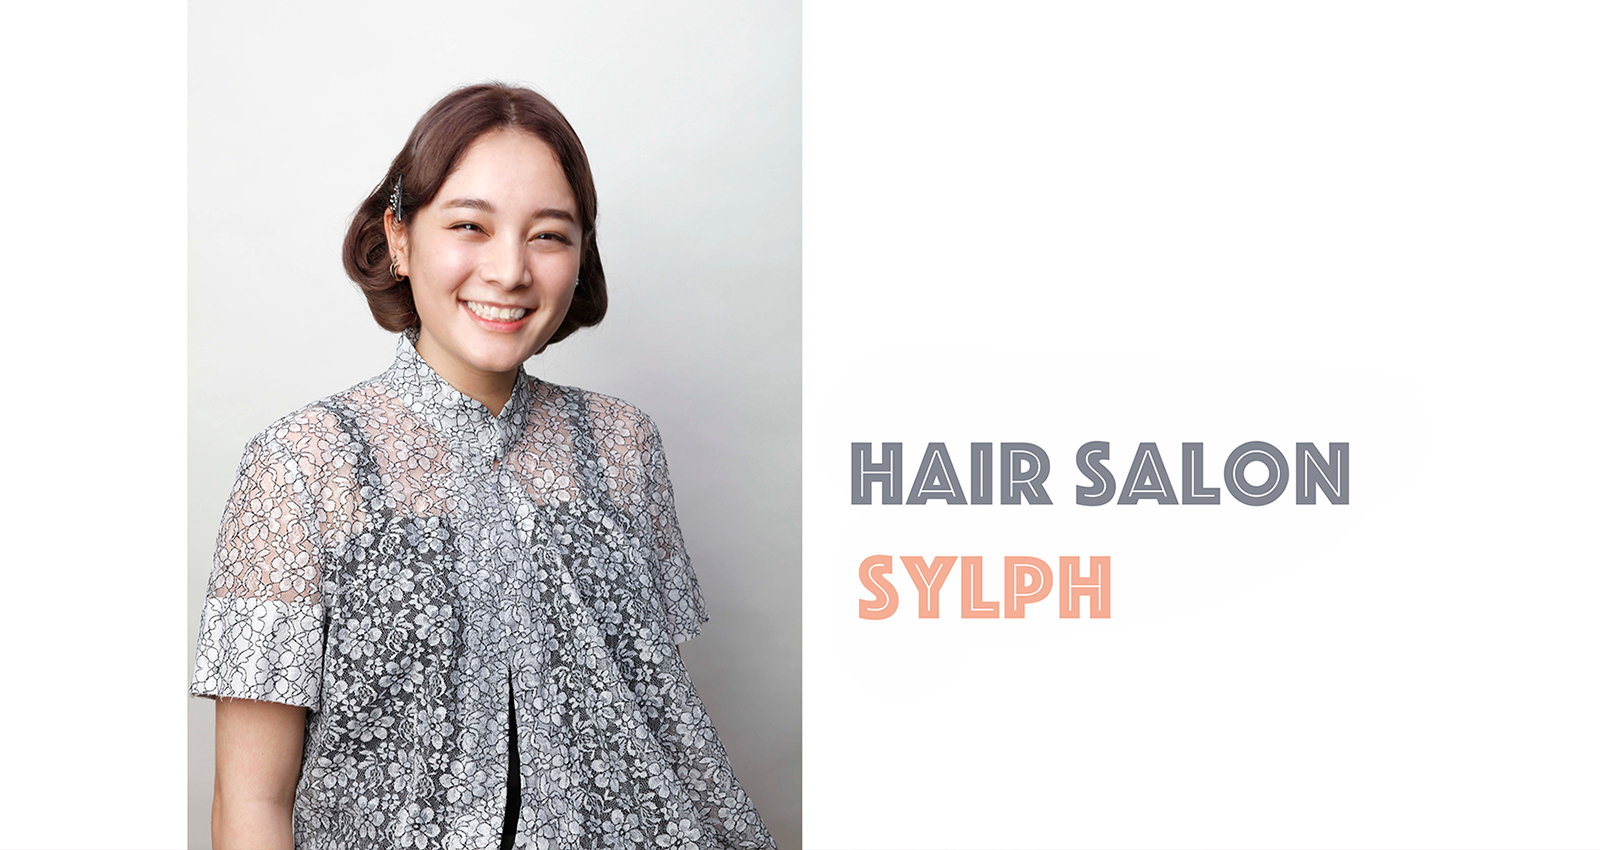 Hair Salon Sylph